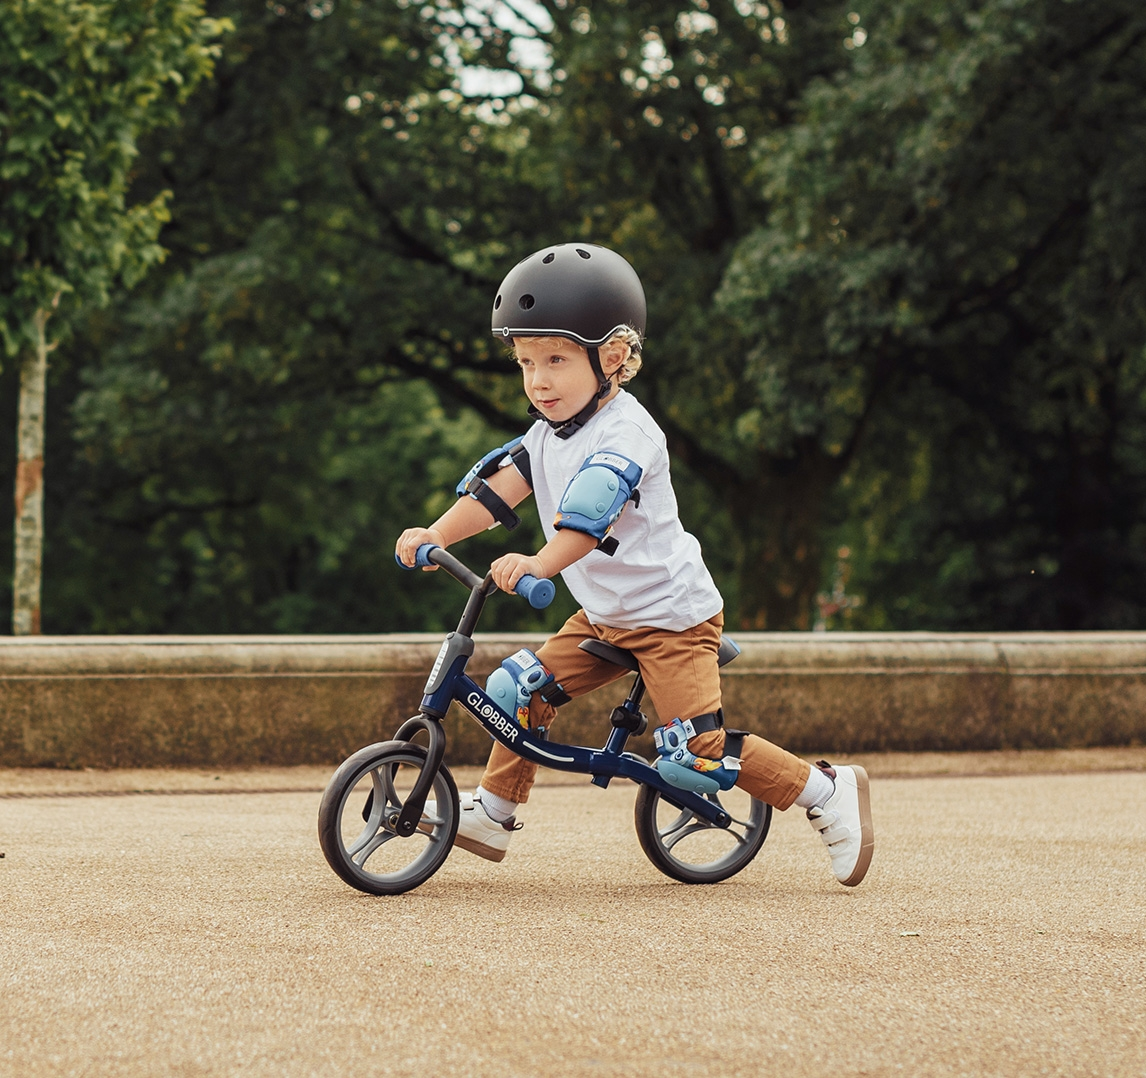 GO-BIKE-kids-toddler-balance-bike-for-girls-and-boys-with-sturdy-handlebars-and-durable-steel-frame